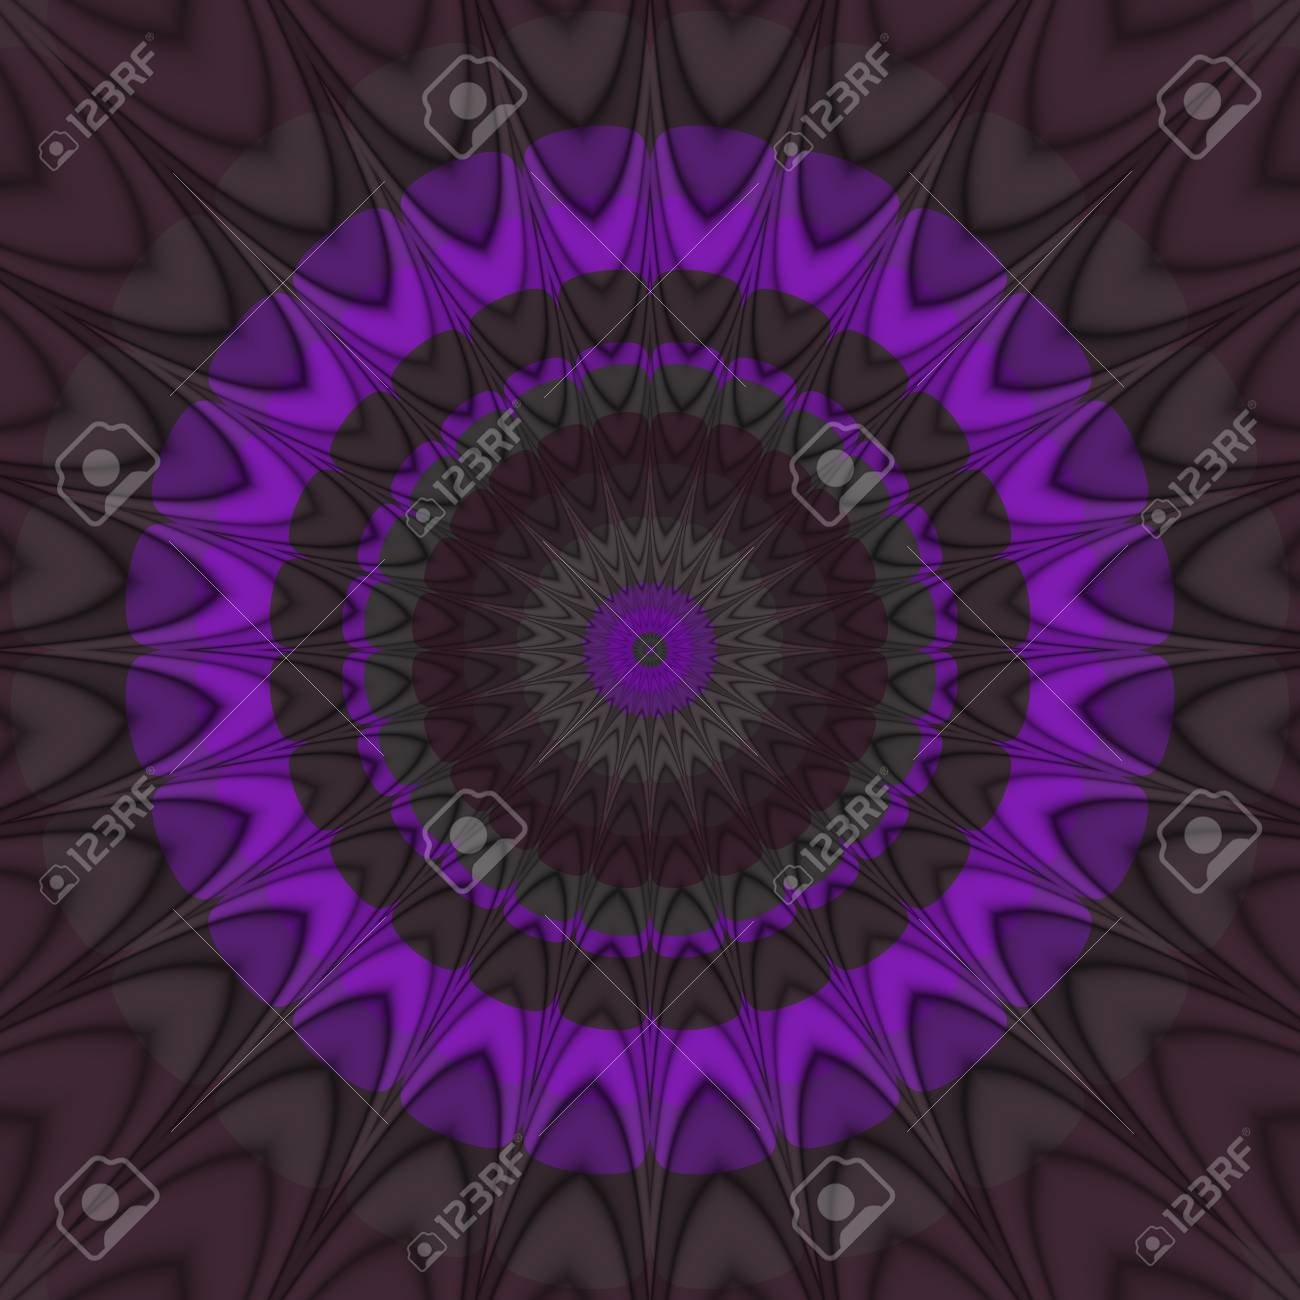 Abstract Shining Psychedelic Spiky Spiny Round Regular Background 1300x1300